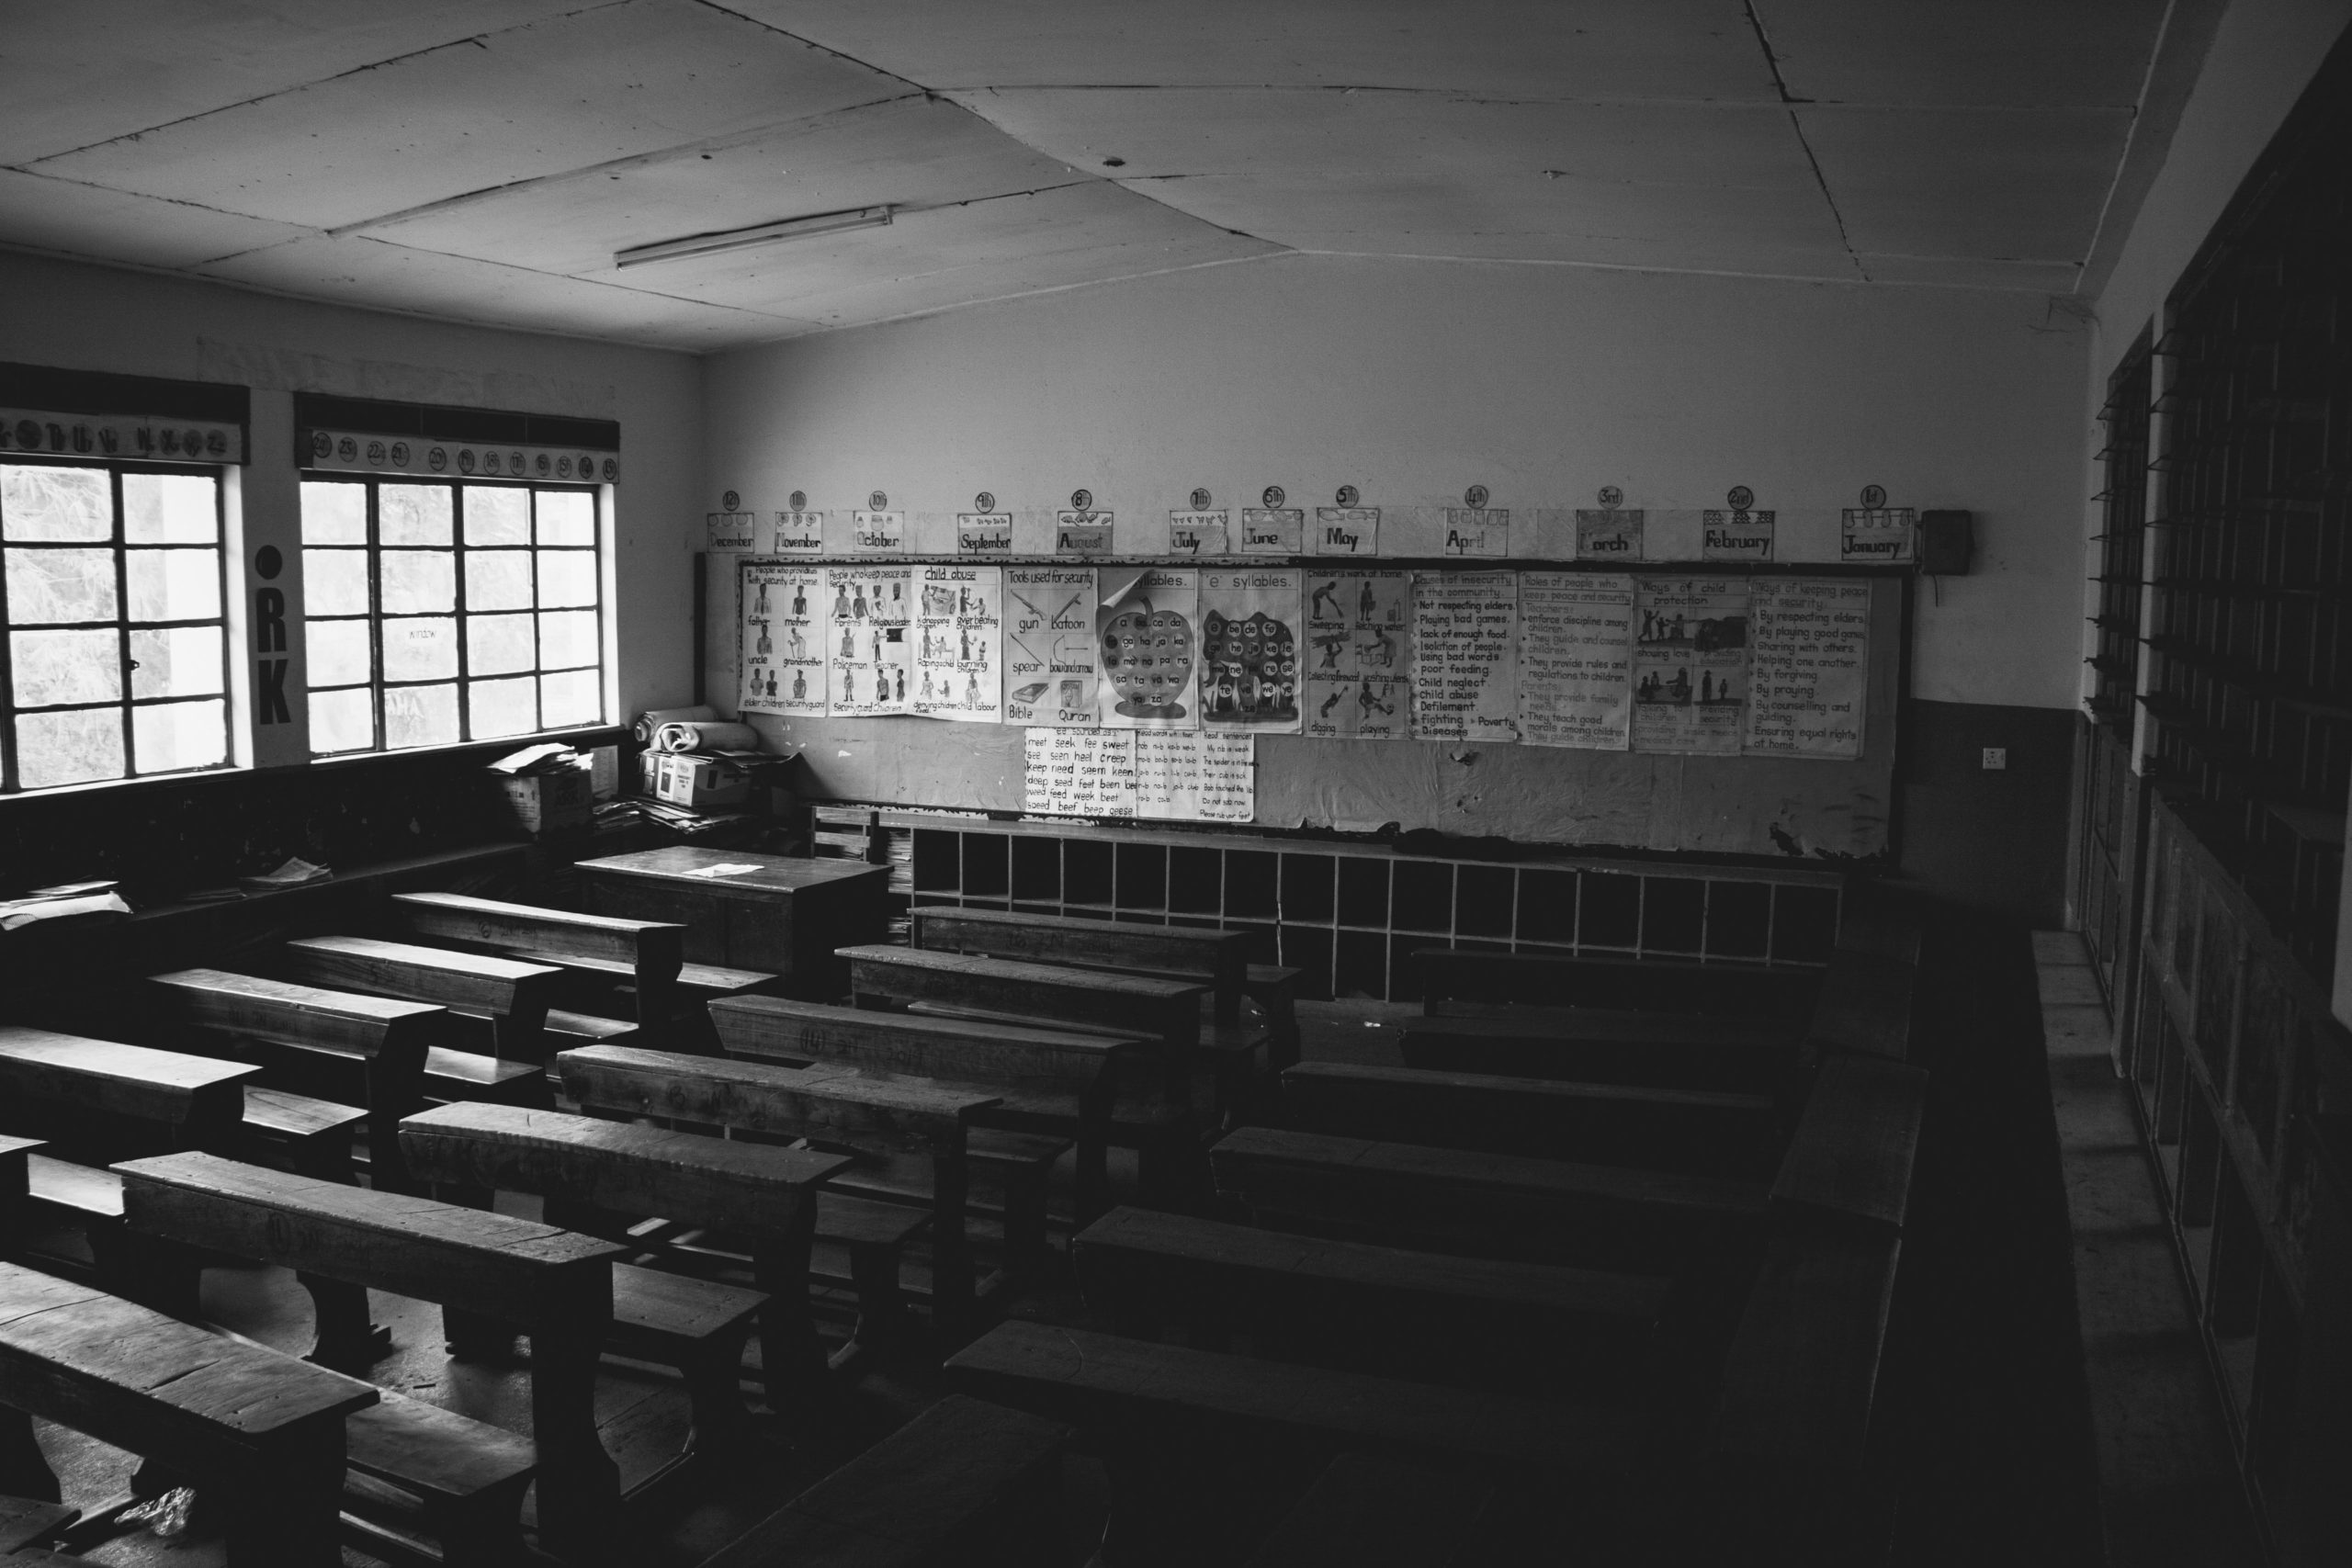 An empty school room